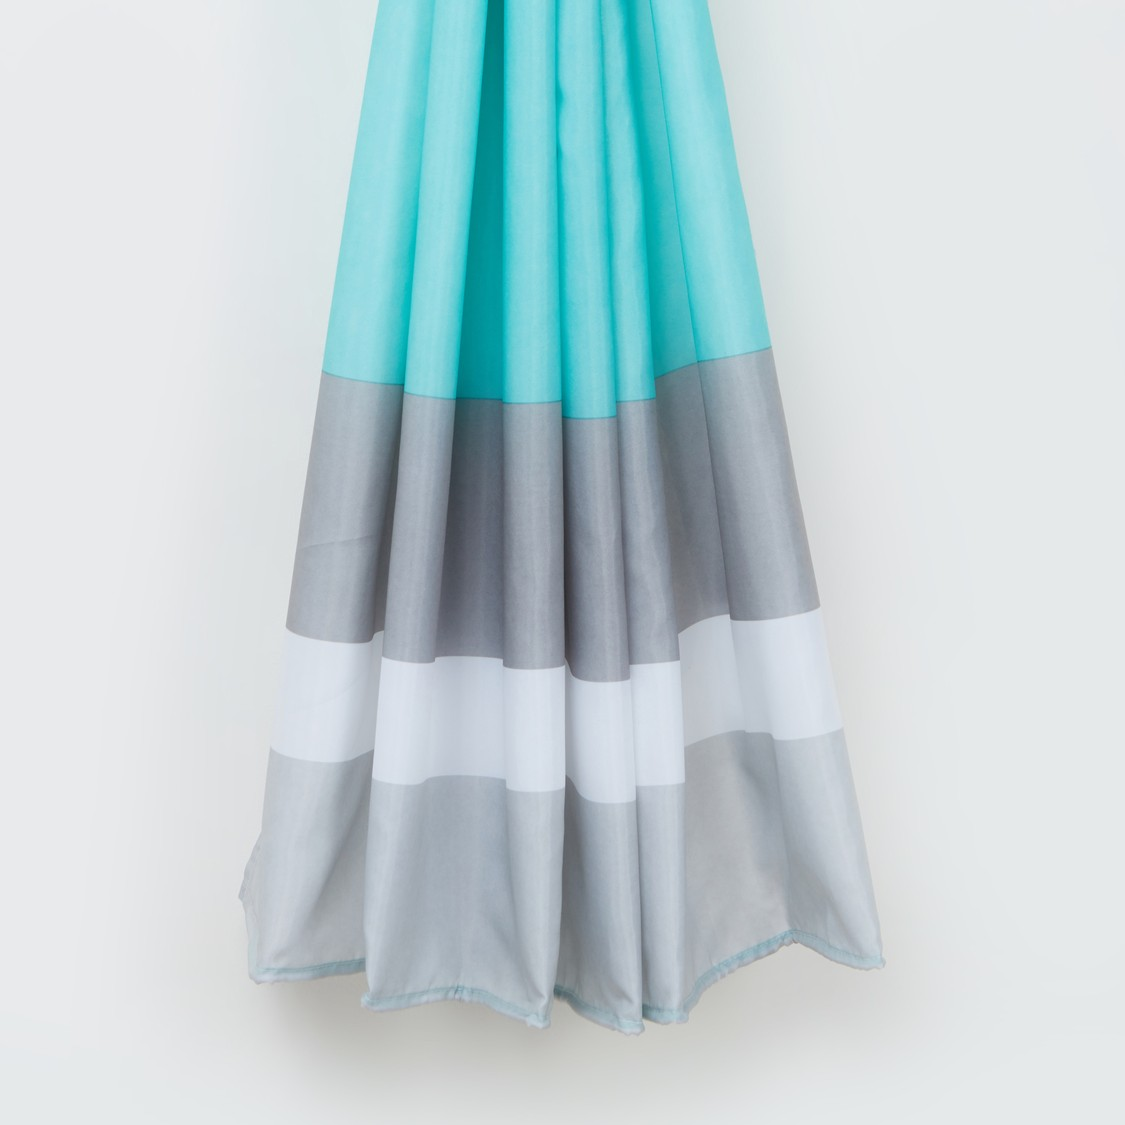 Striped Eyelet Shower Curtain - 180x180 cms